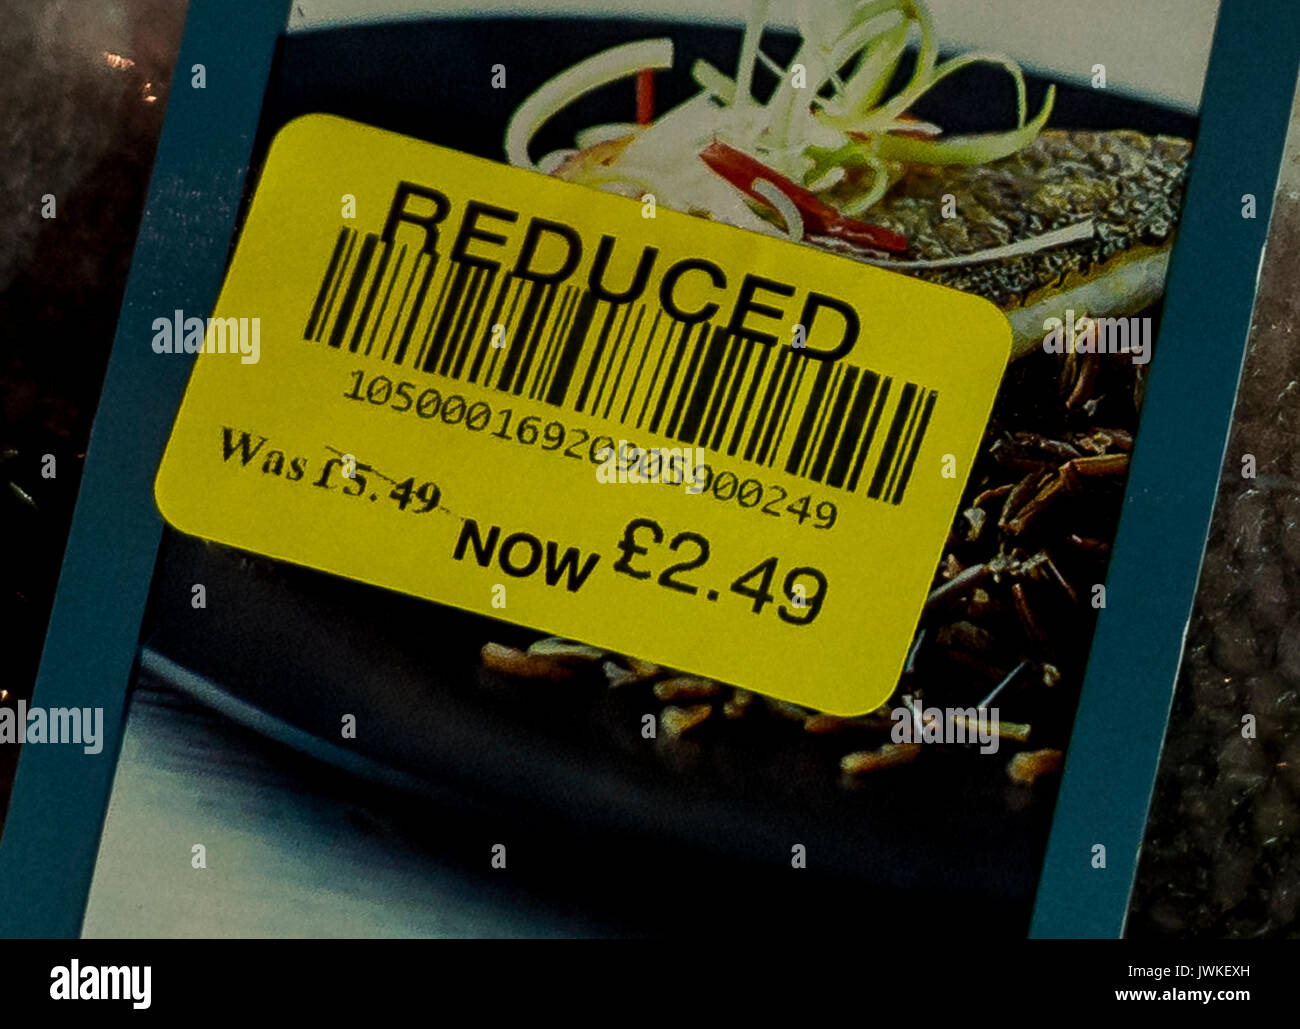 A price reduction sticker on a packet of food. - Stock Image